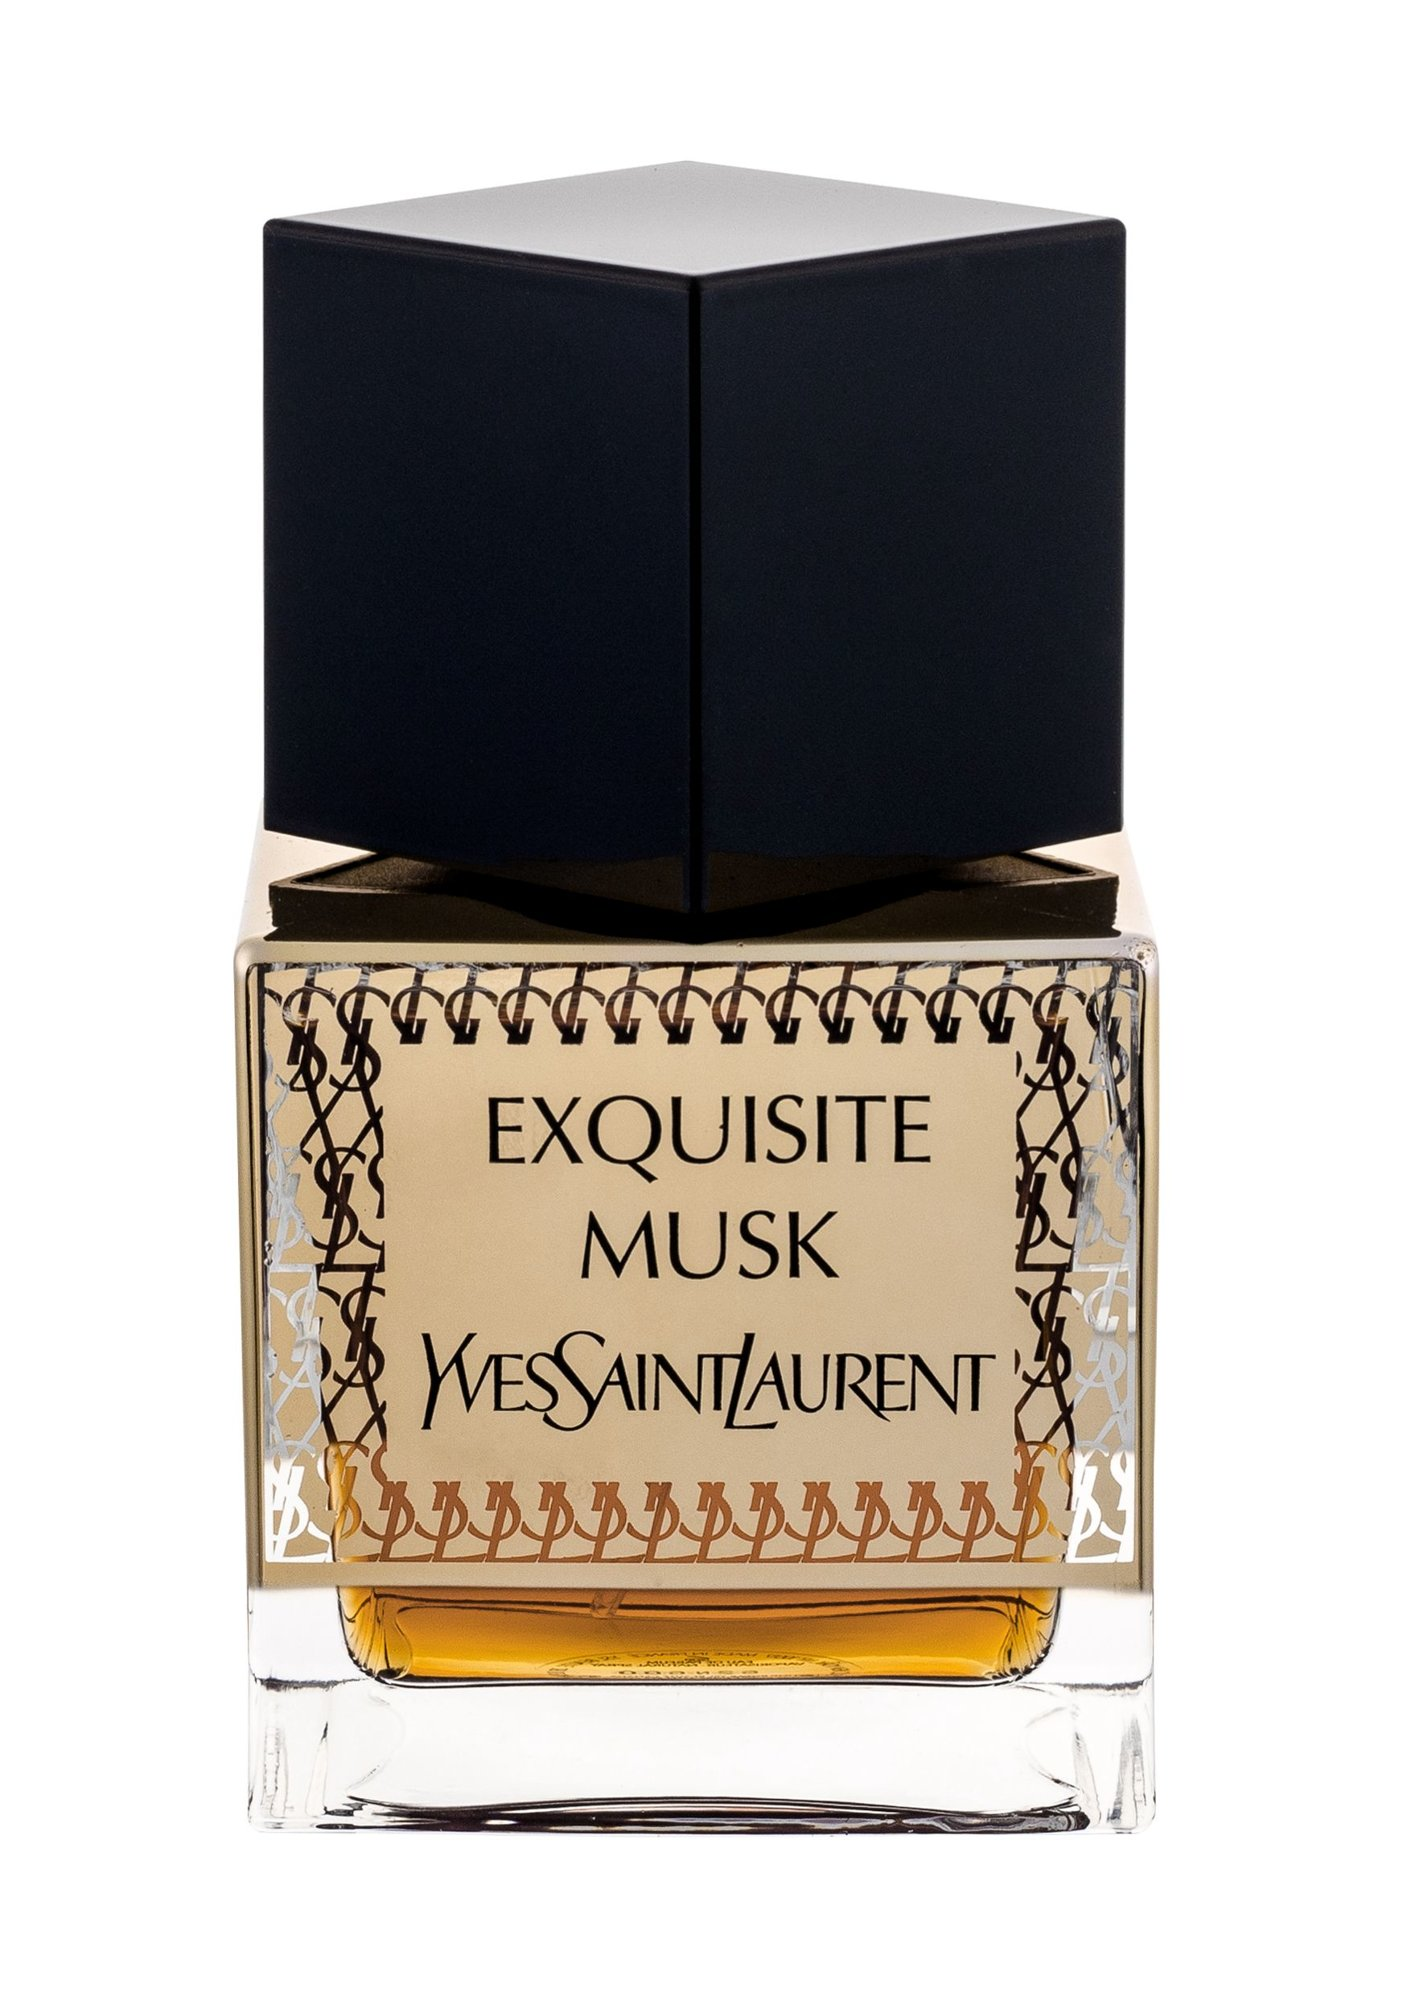 Yves Saint Laurent Exquisite Musk Eau de Parfum 80ml